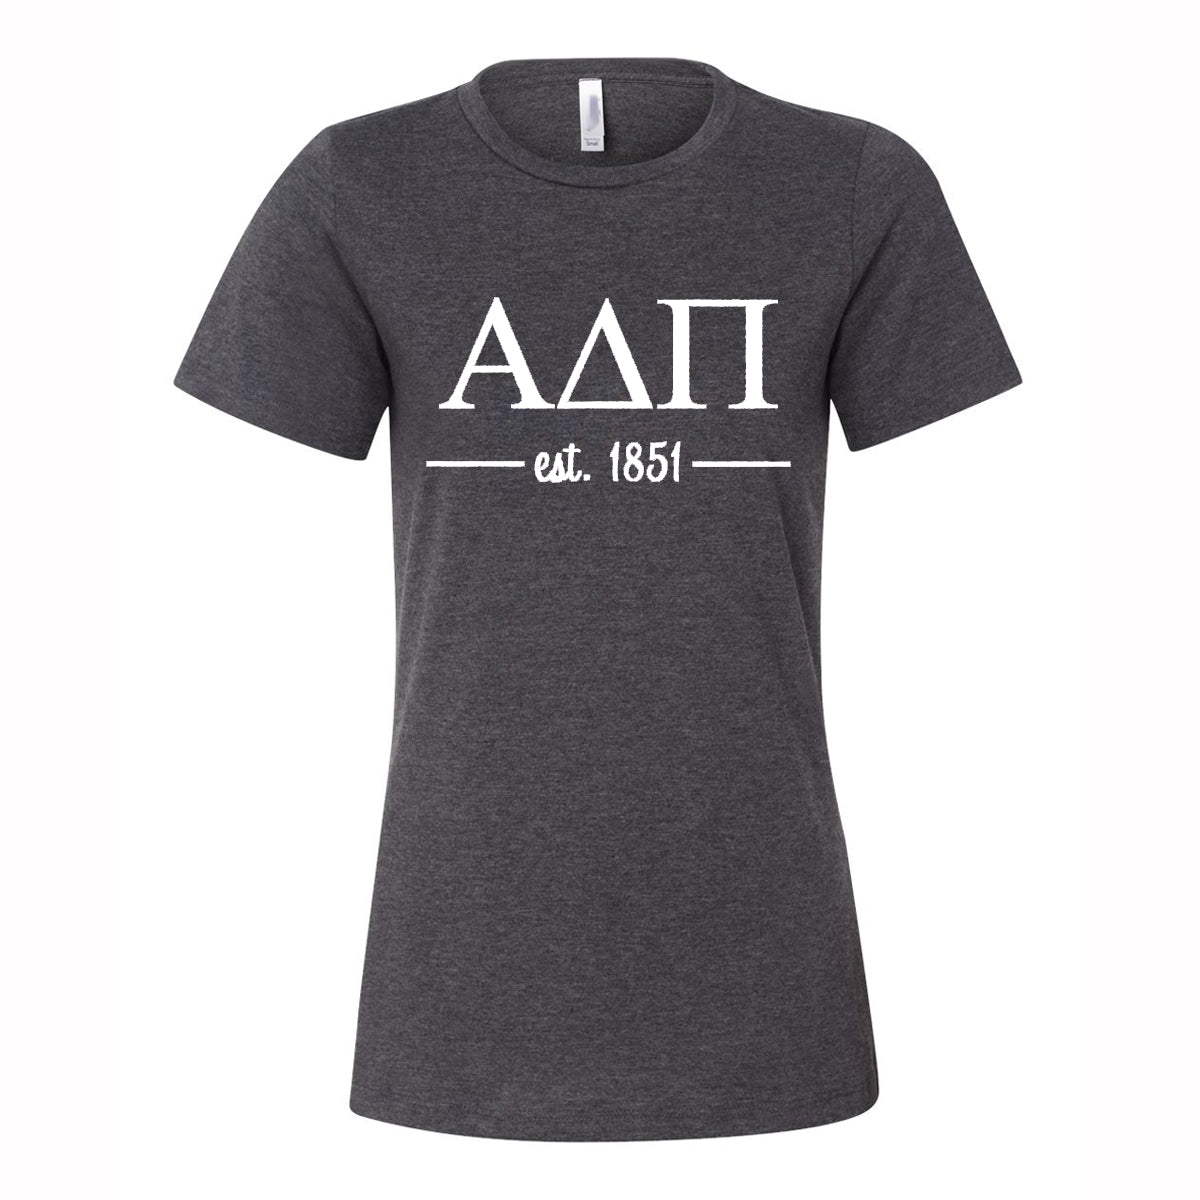 Alpha Delta Pi Women's Relaxed Fit Short Sleeve Jersey Tee